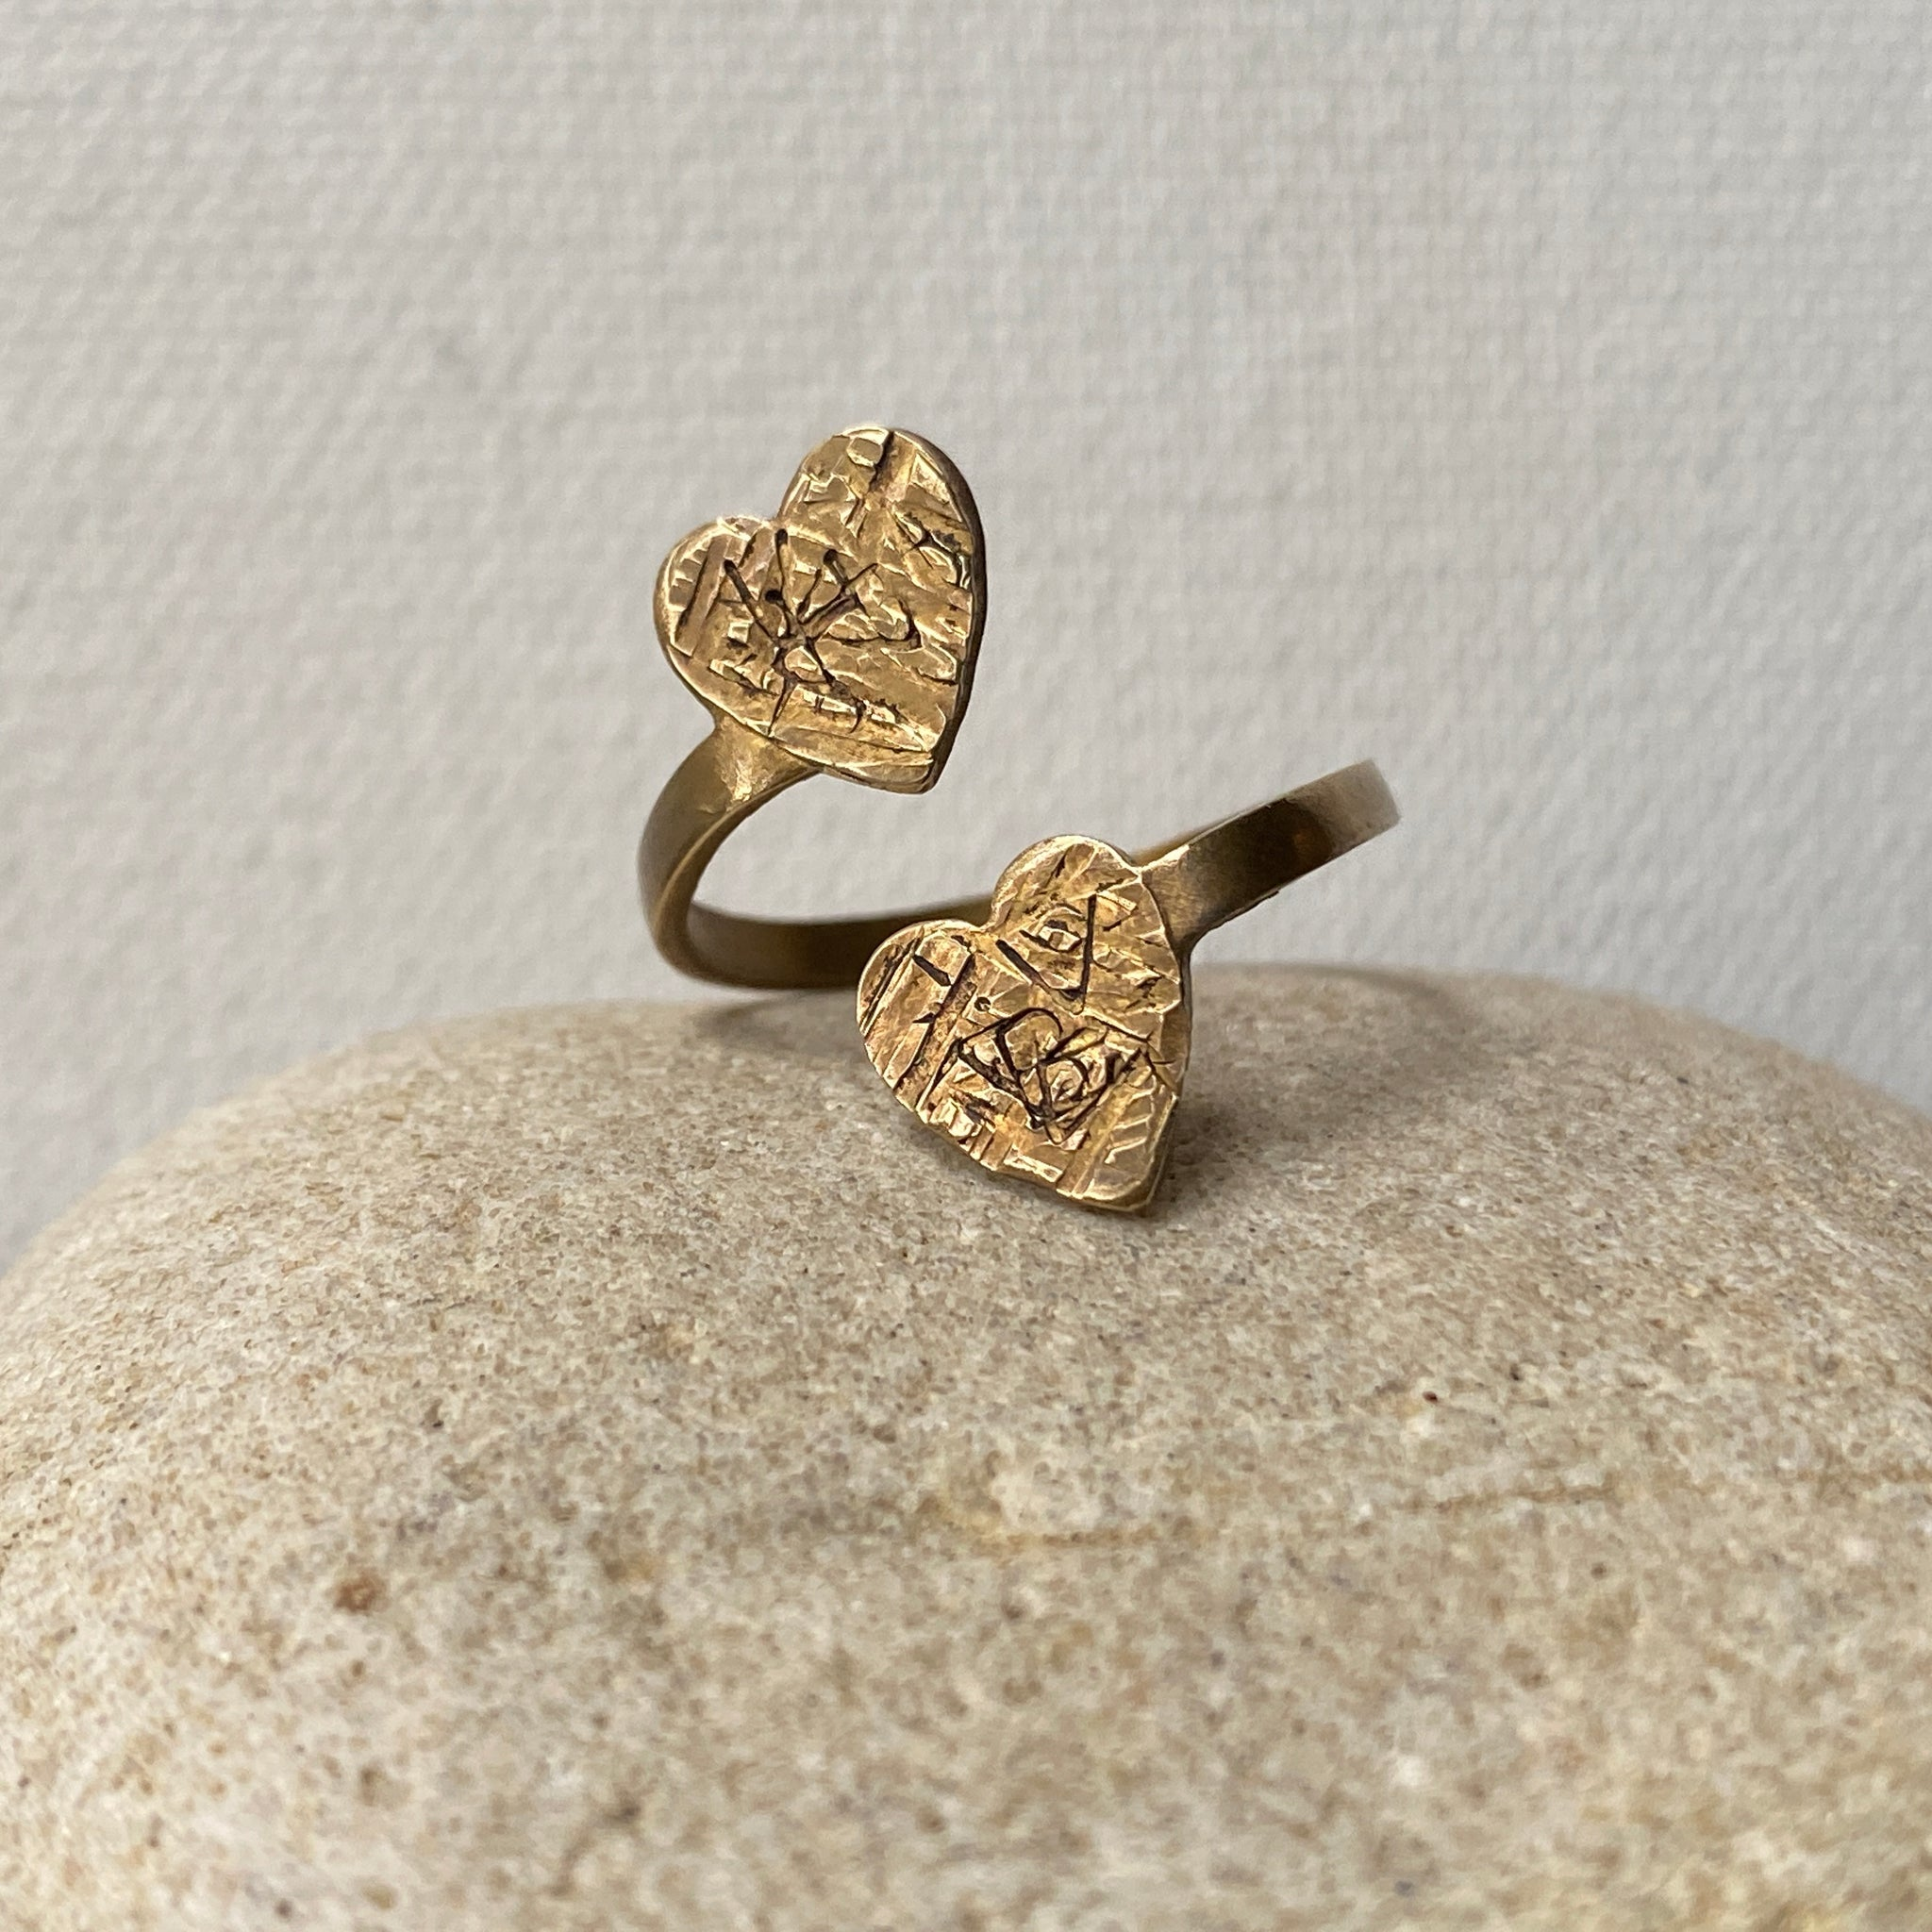 Adjustable Heart Ring with Textured Finish